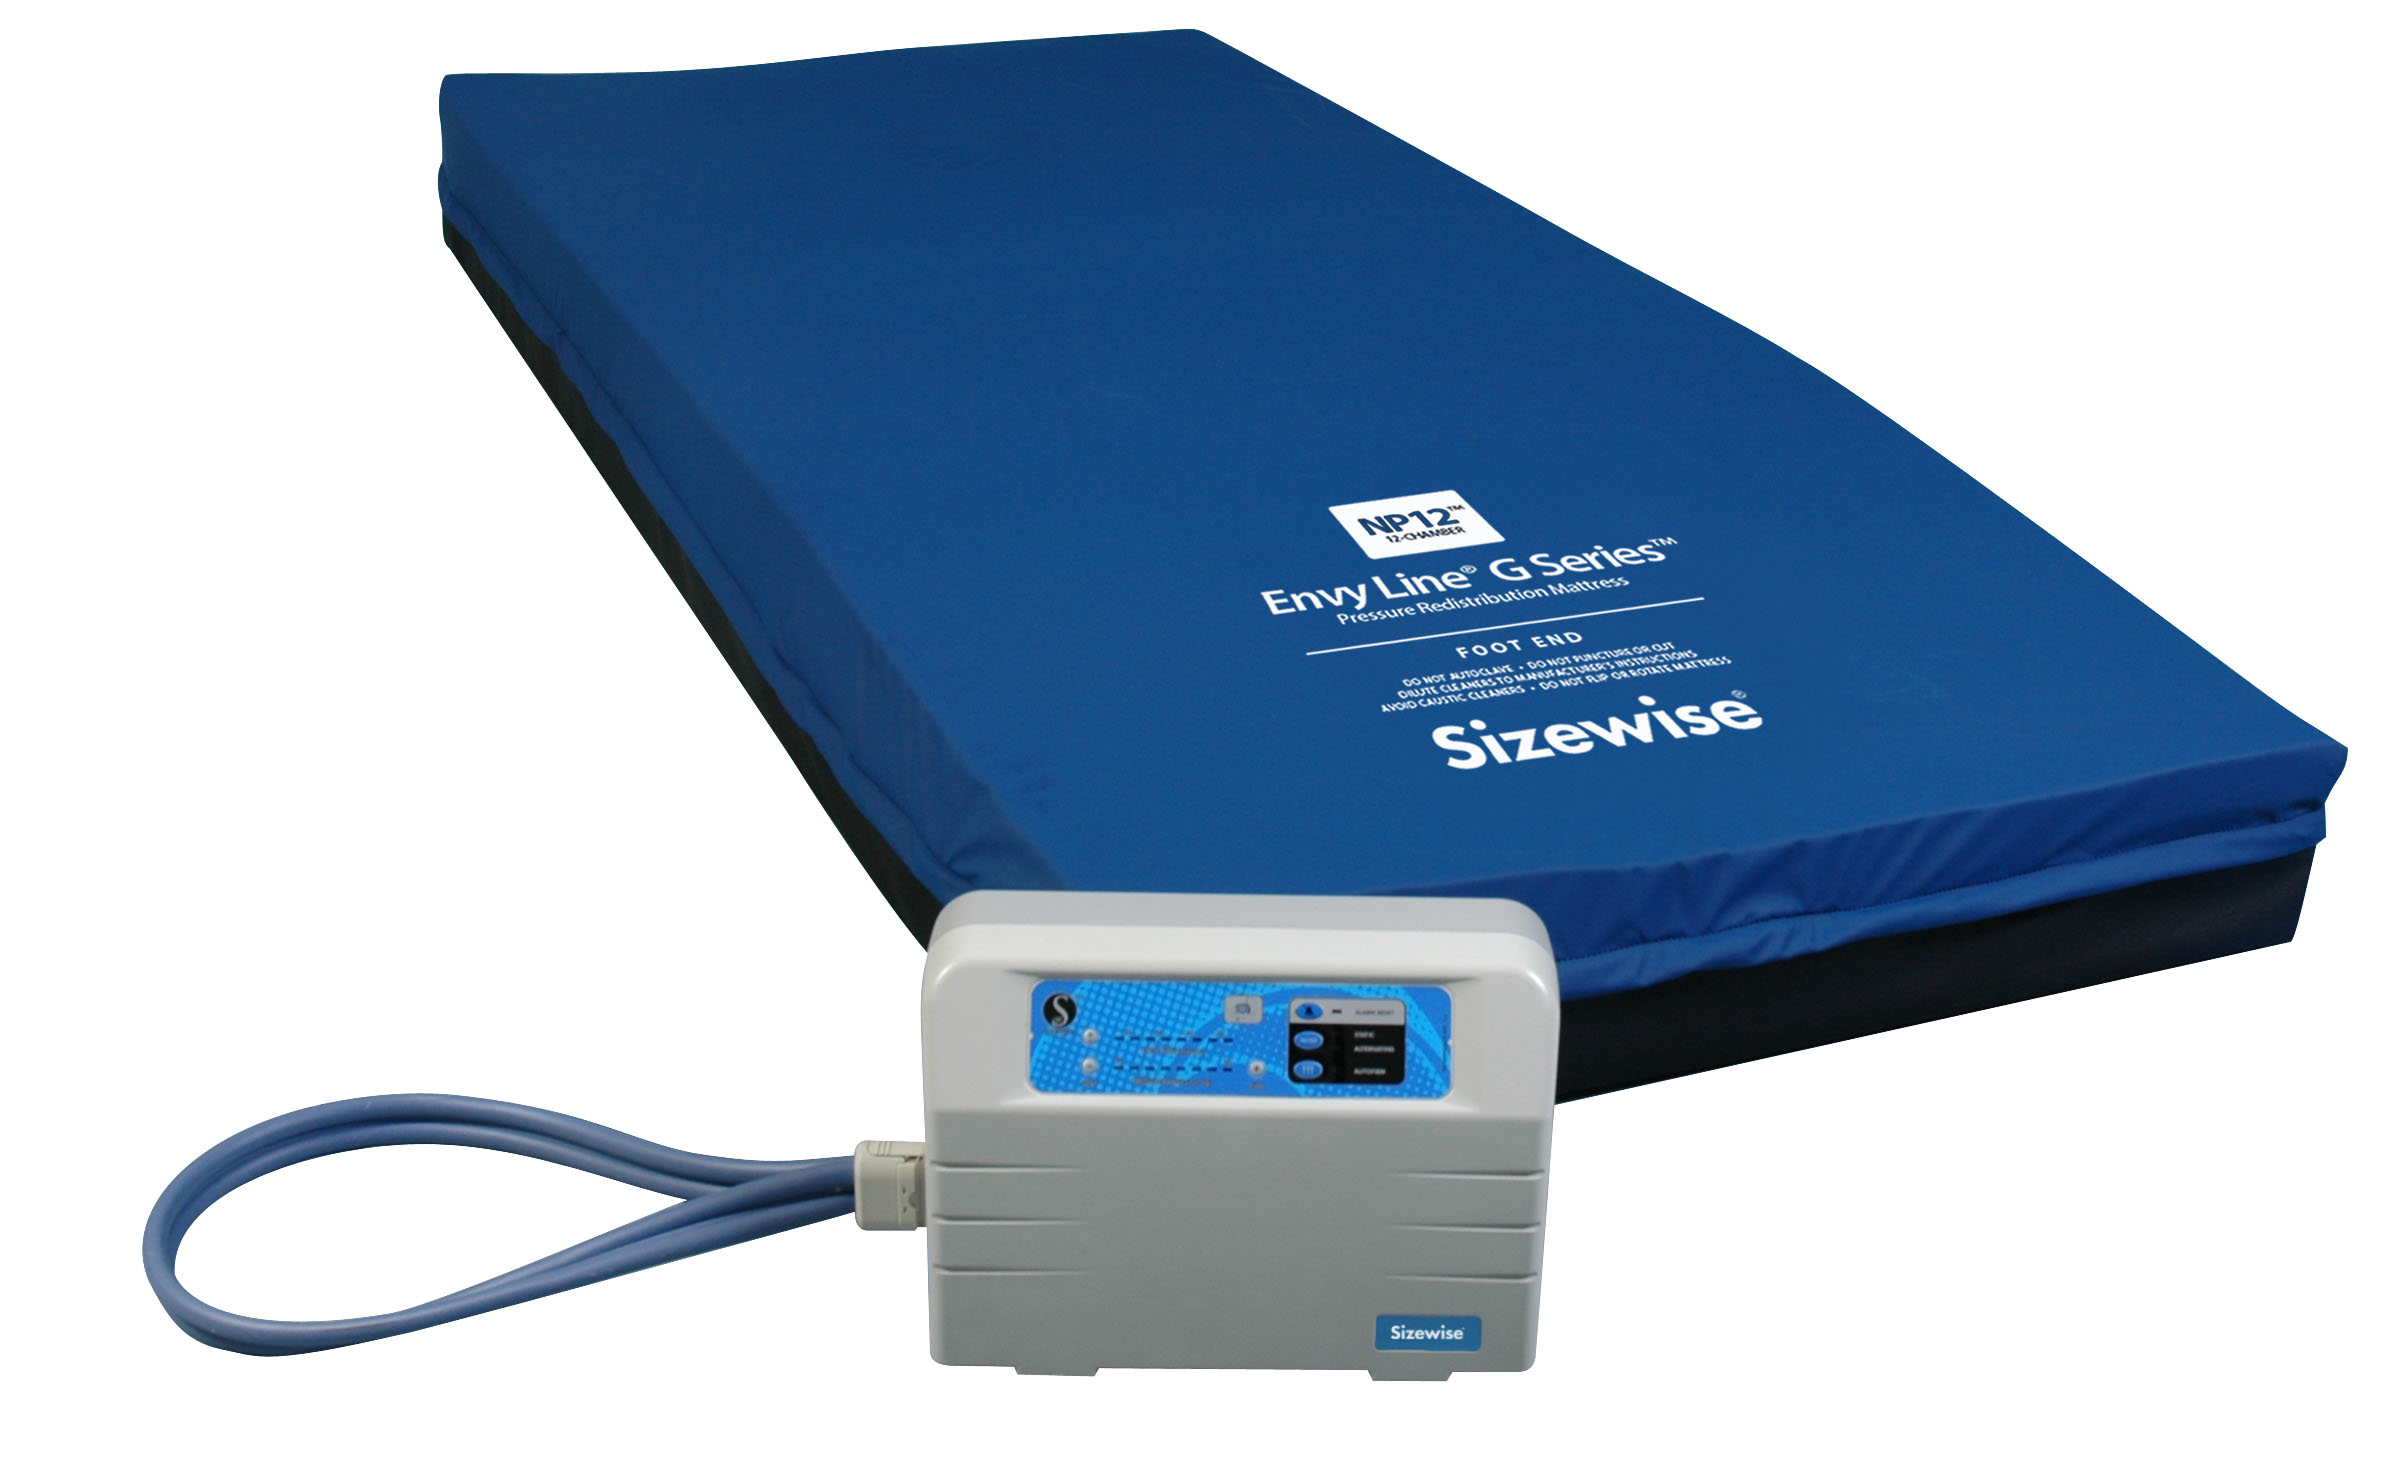 Envy G Series NP12 Mattress With Blower Unit